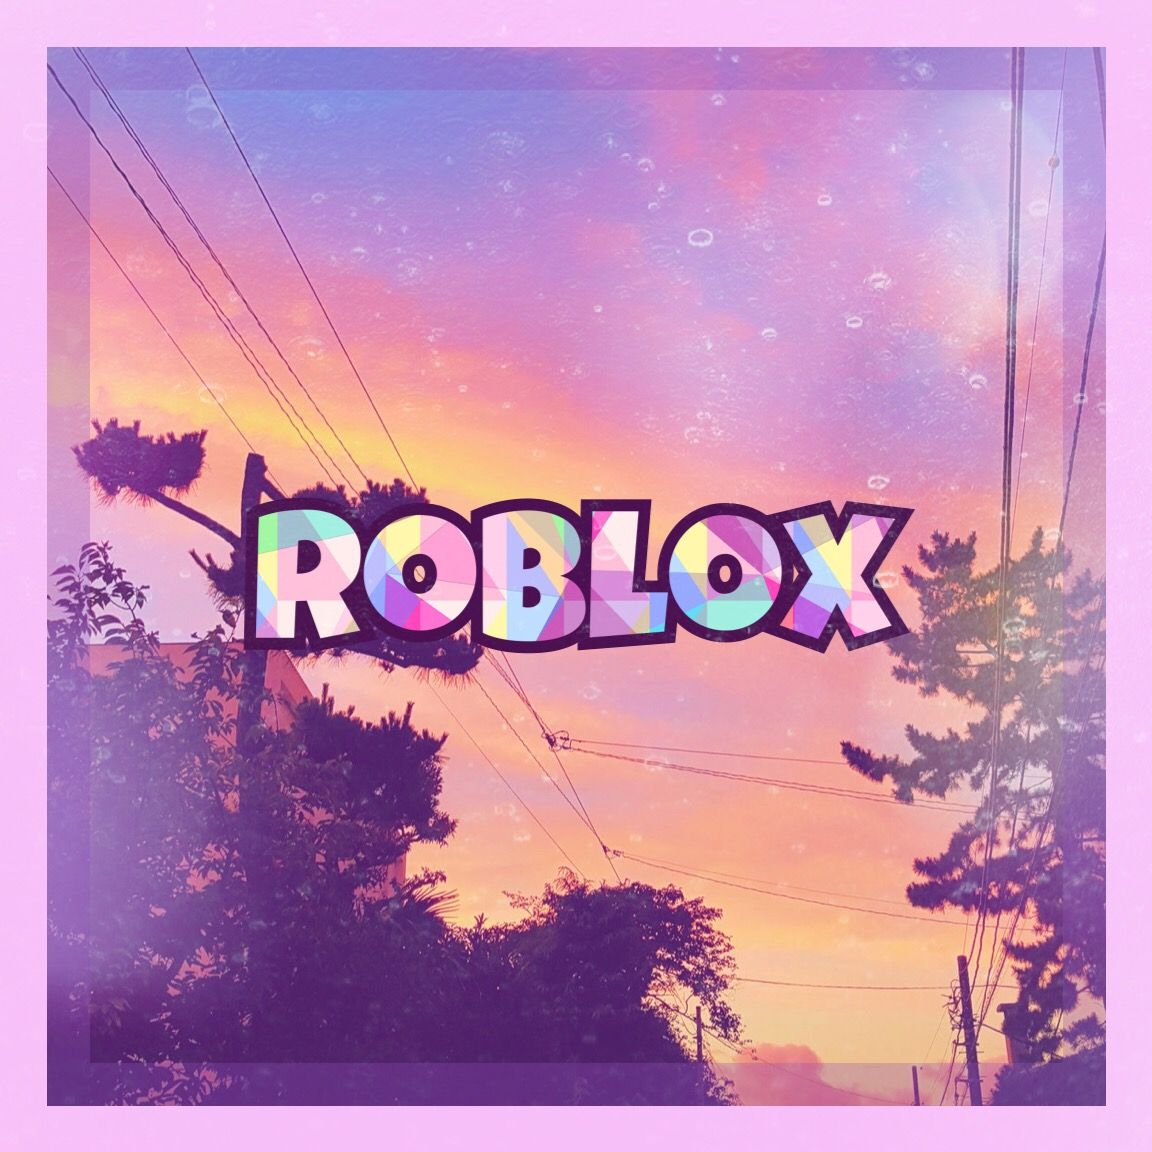 Aesthetic Pink Roblox Gfx In 2020 Cute Tumblr Wallpaper Roblox Pictures Roblox